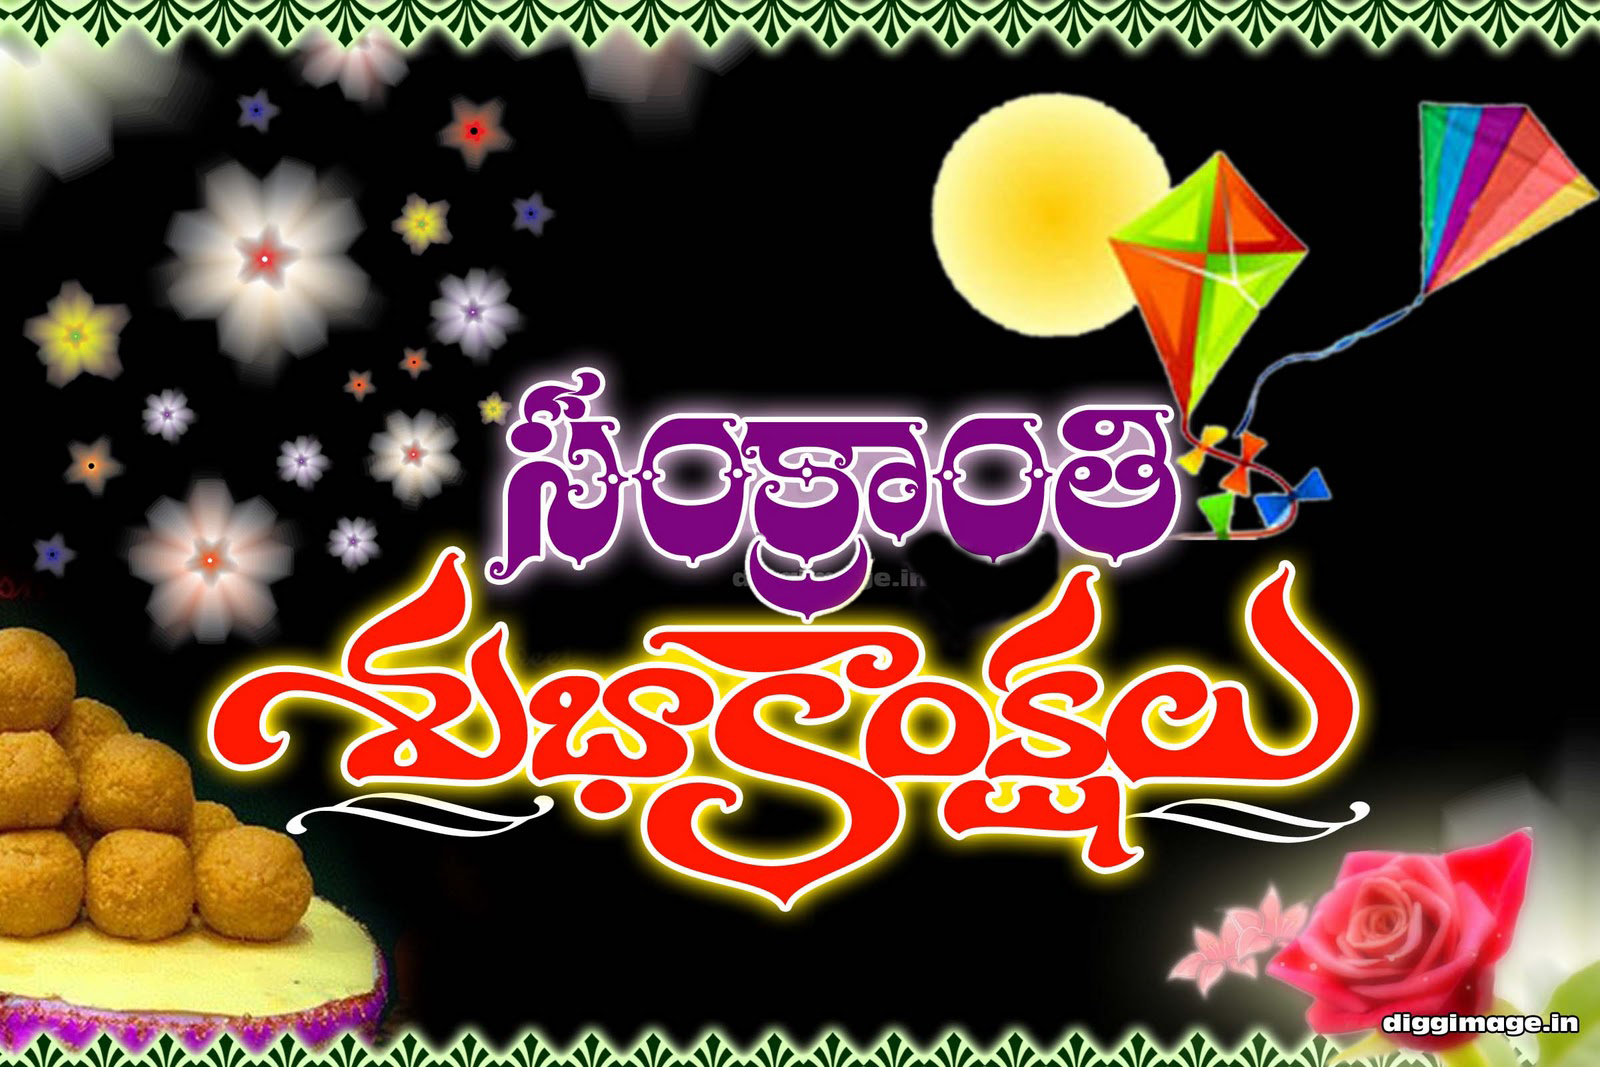 Happy sankranthi 2016 wishes happy pongal wishes 2016 wishes happy sankranthi 2016 wishes happy pongal wishes 2016 wishes greetings sms wallpapers m4hsunfo